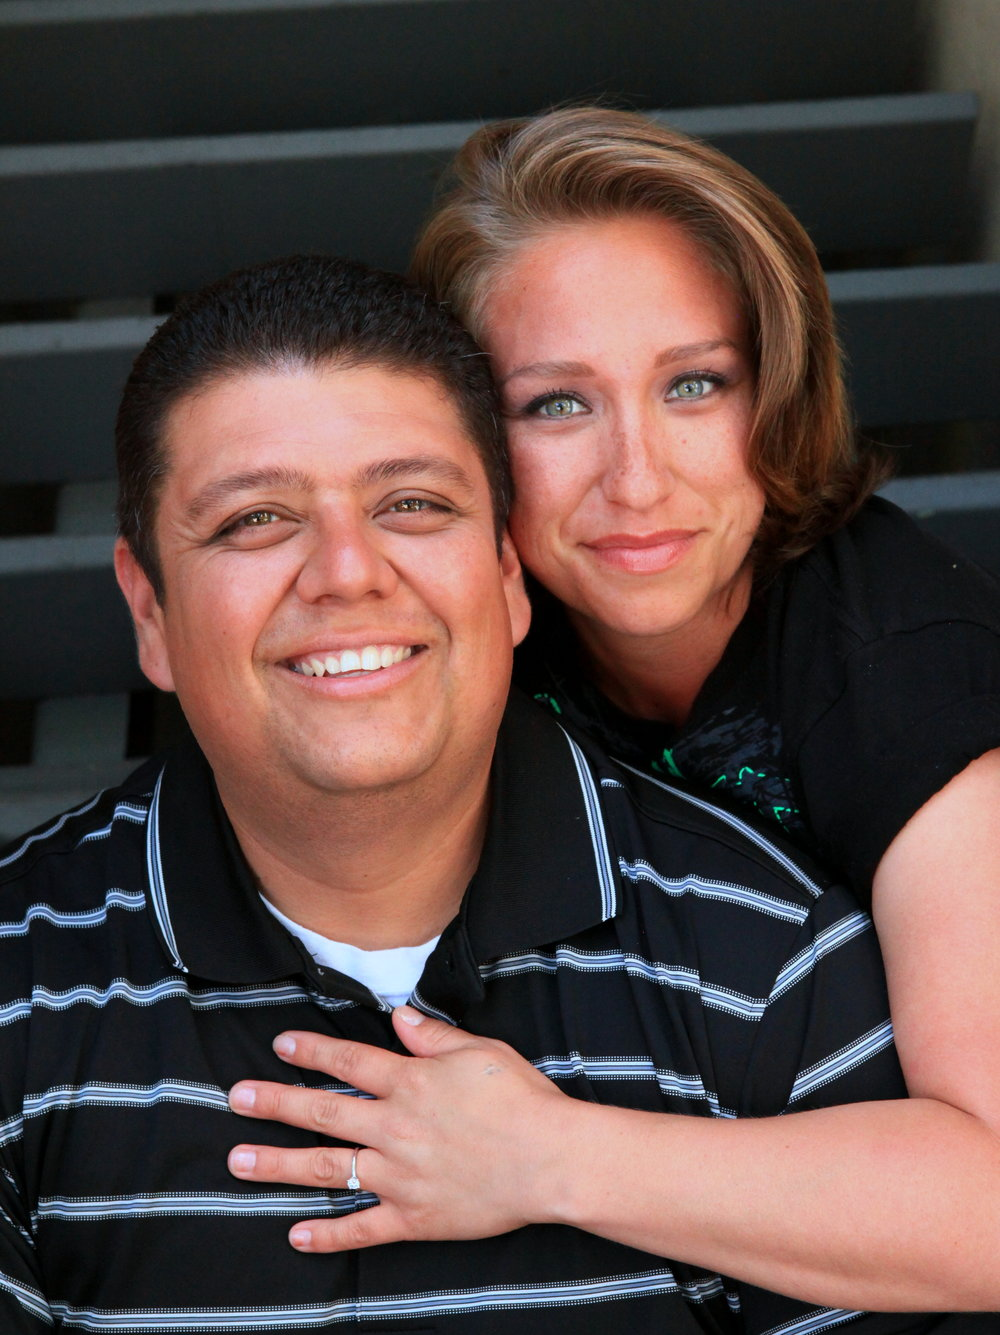 Steven and Sophia have gone through the Teen Challenge program and are a shining example of how the program offers recovery to those who most need it. After overcoming alcoholism, the couple now direct the Teen Challenge NorWestCal Nevada centers in the San Francisco South Bay.